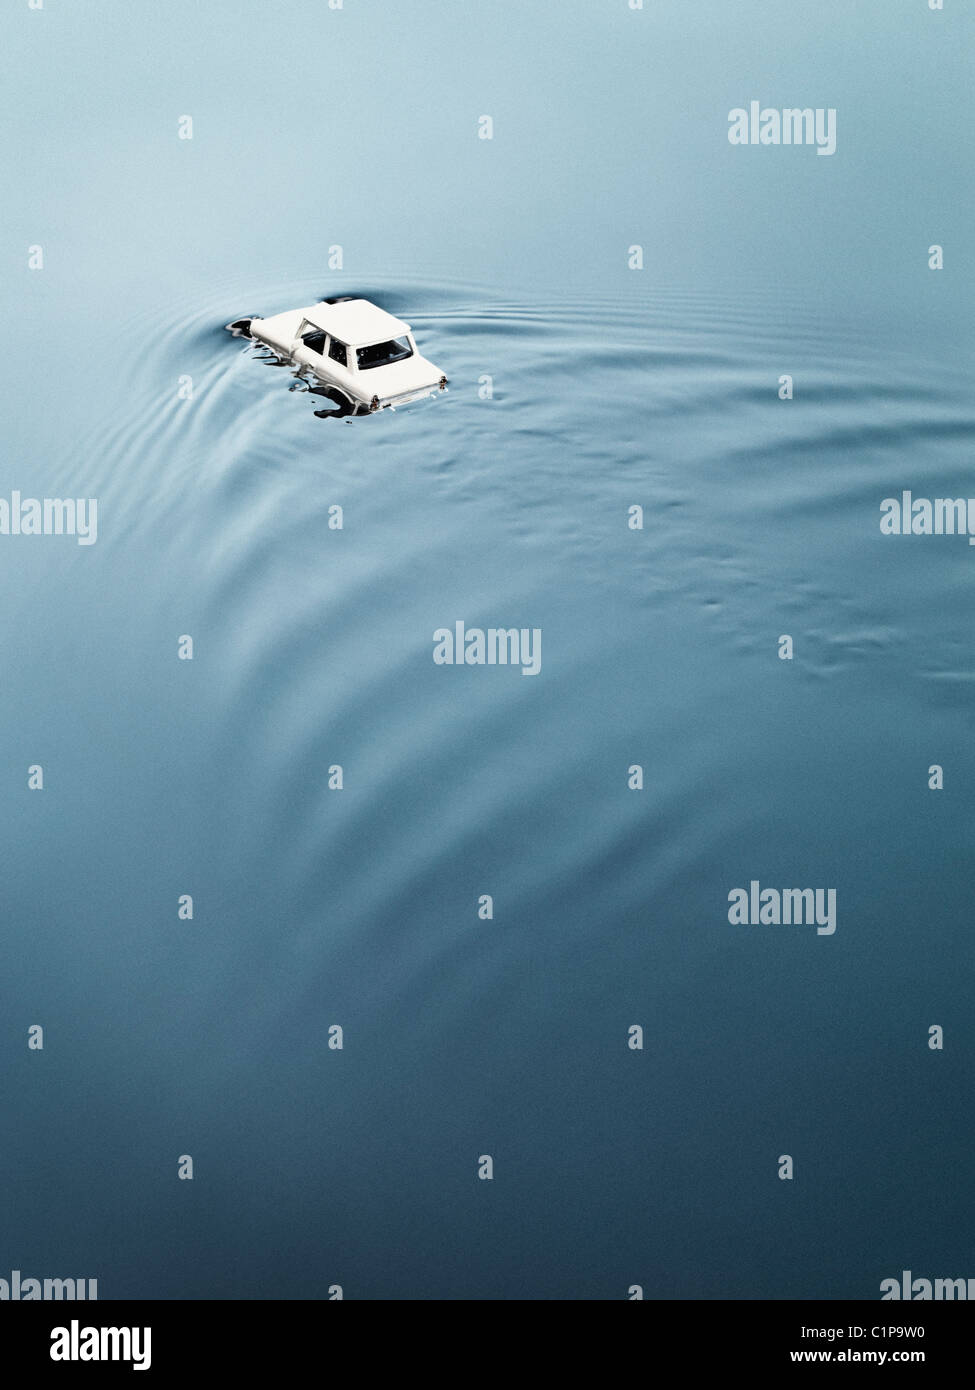 Toy car drowning in water - Stock Image